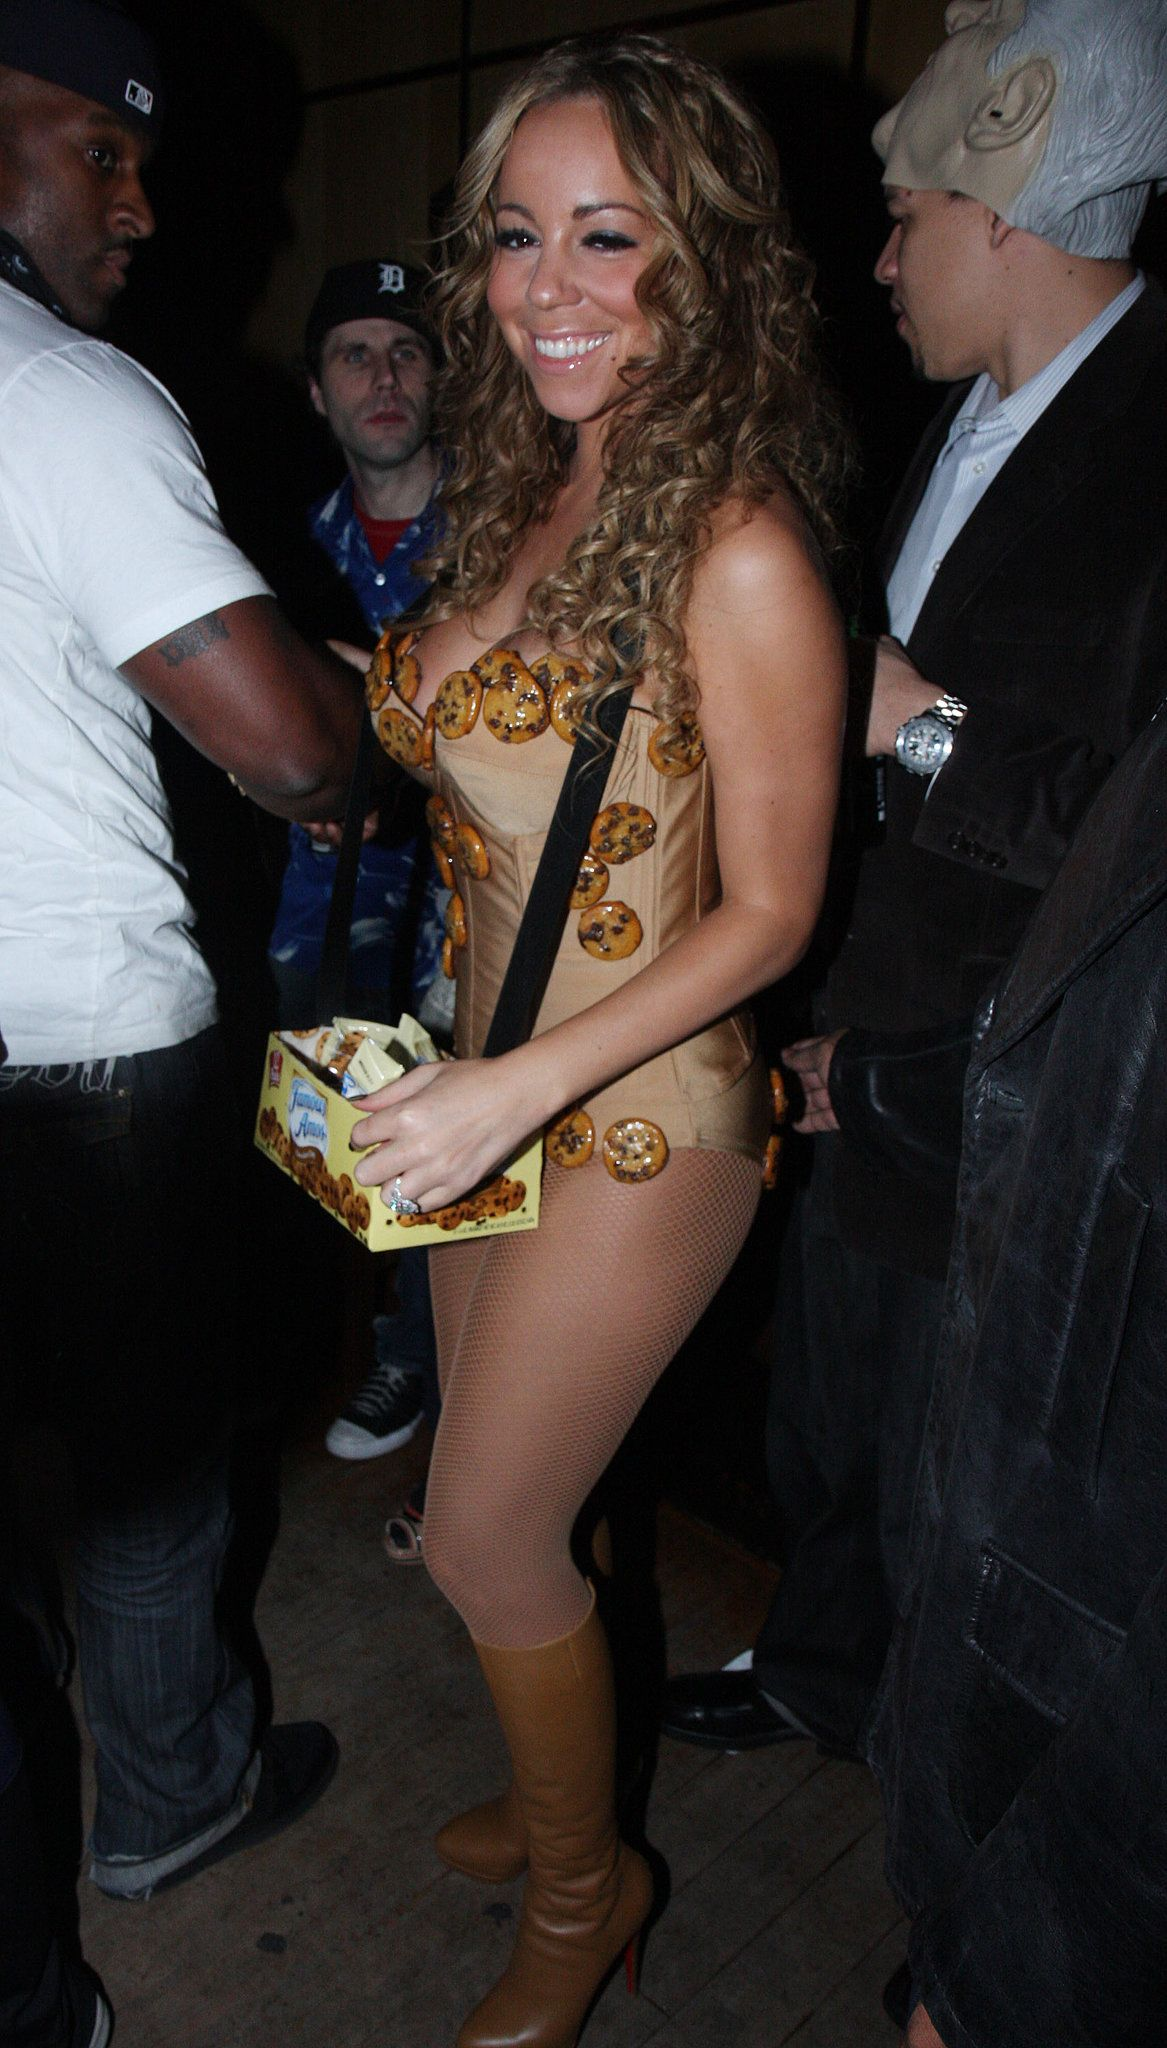 over 250 celebrity halloween costumes - Skimpy Halloween Outfits